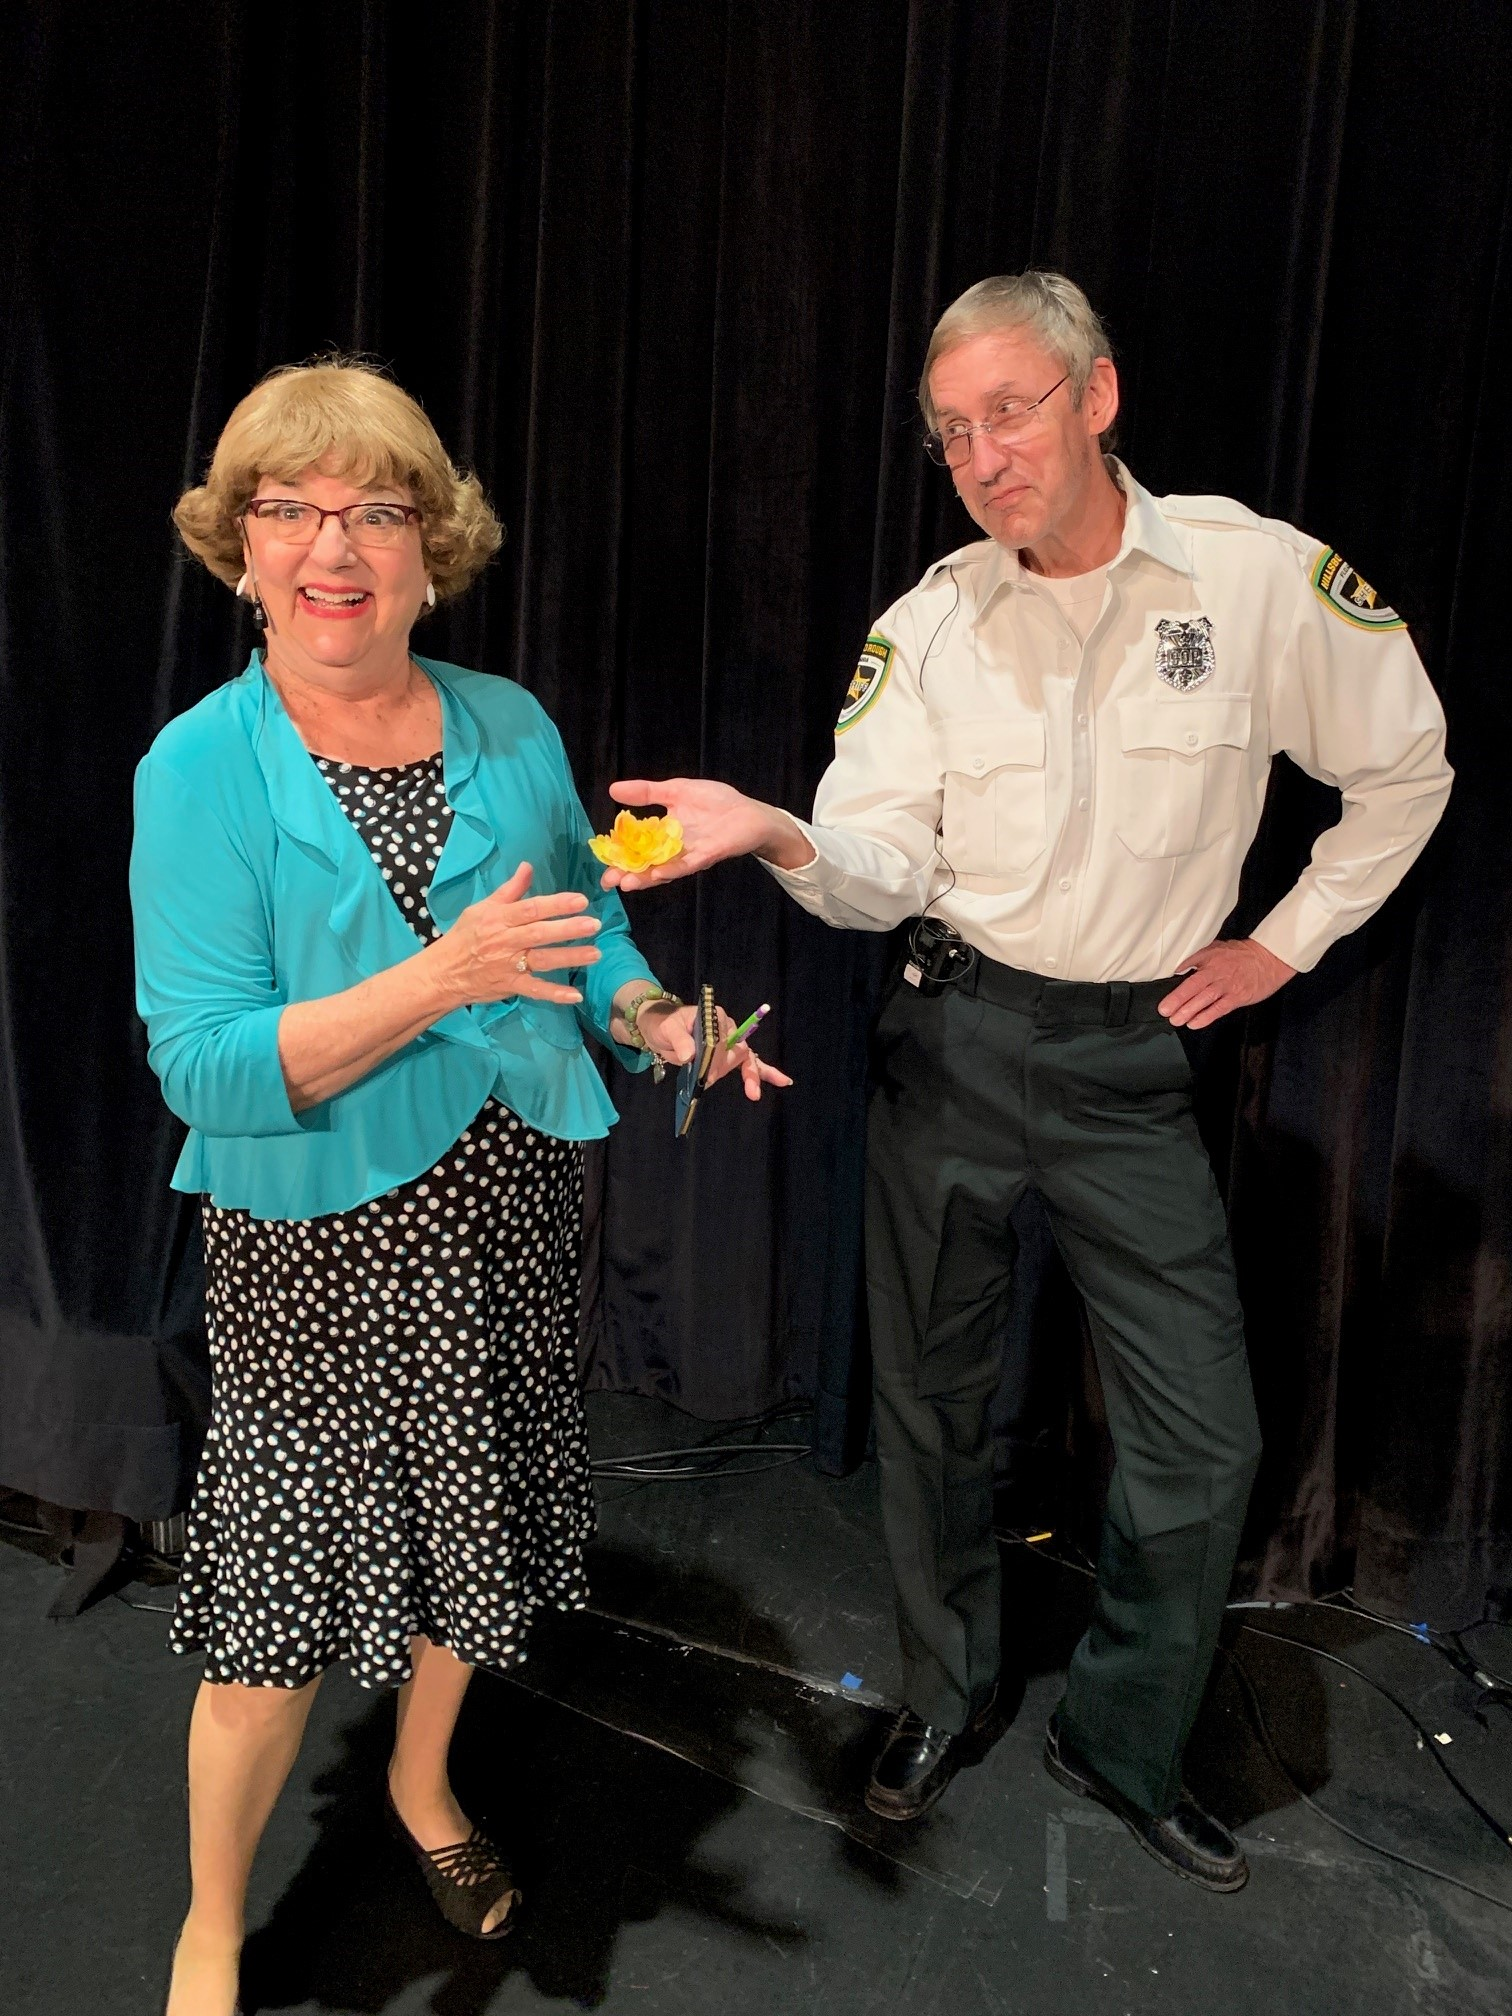 A photo of an older man and woman on a stage acting in character.